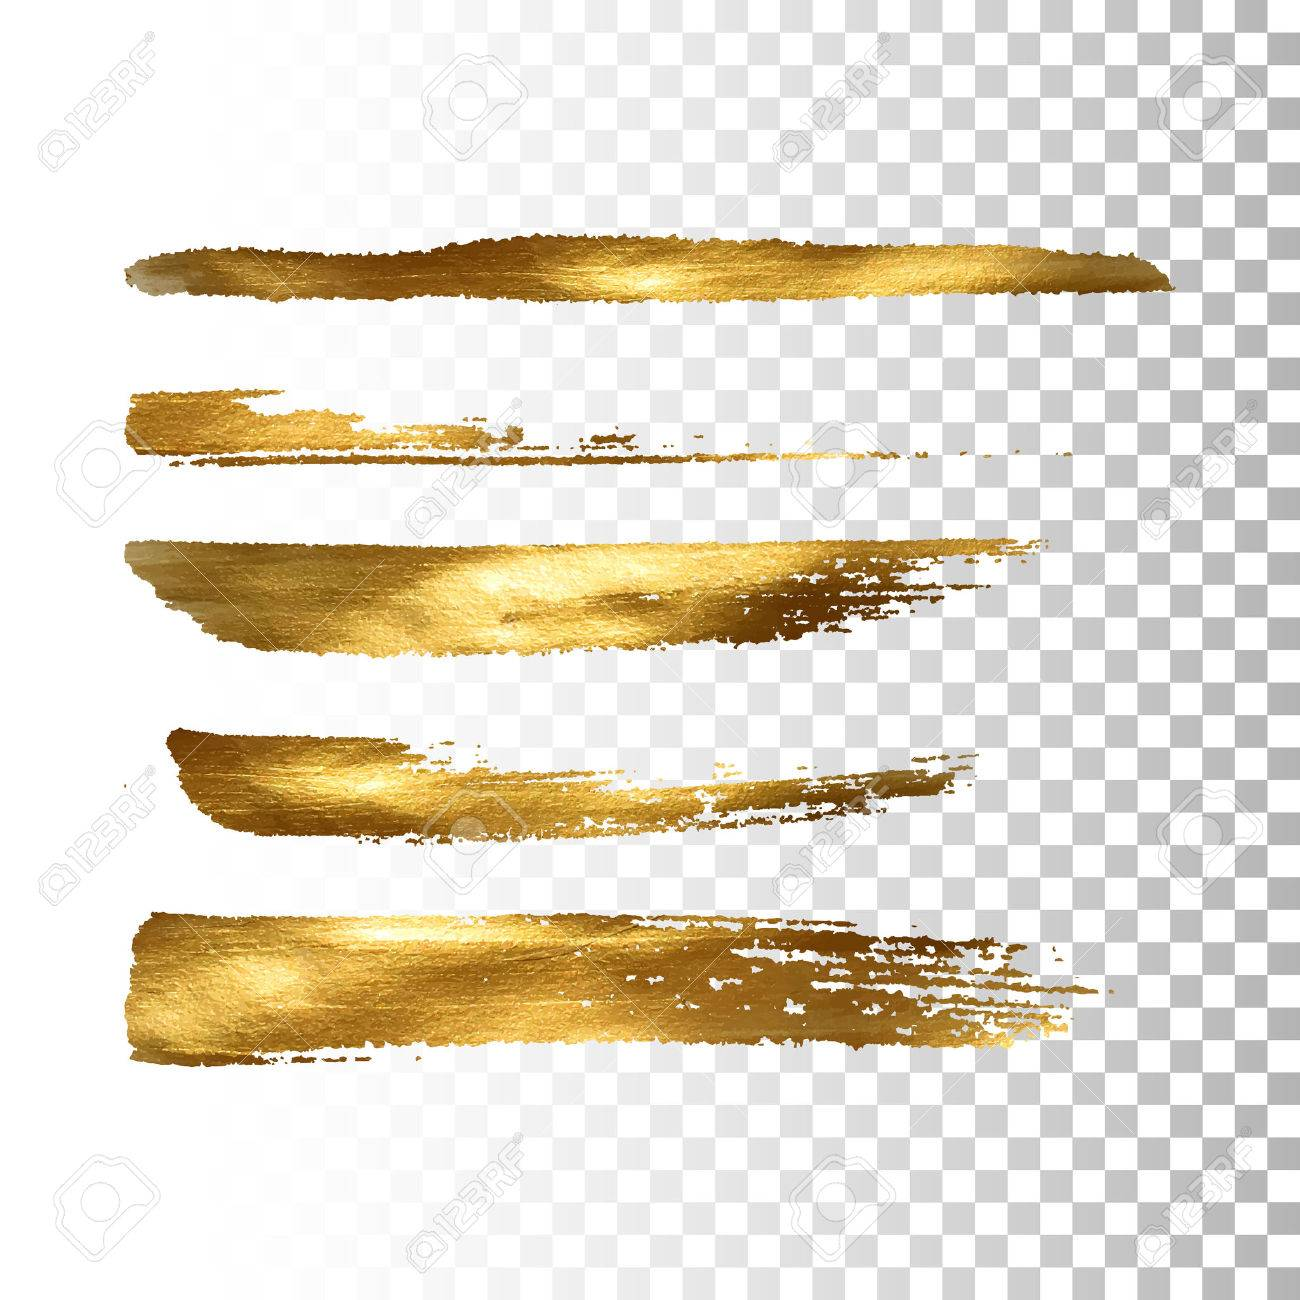 Golden paint brush stroke set. Vector gold paint brush stroke collection. Abstract gold glittering textured brush strokes. Vector illustration of a golden foil banners - 57642036